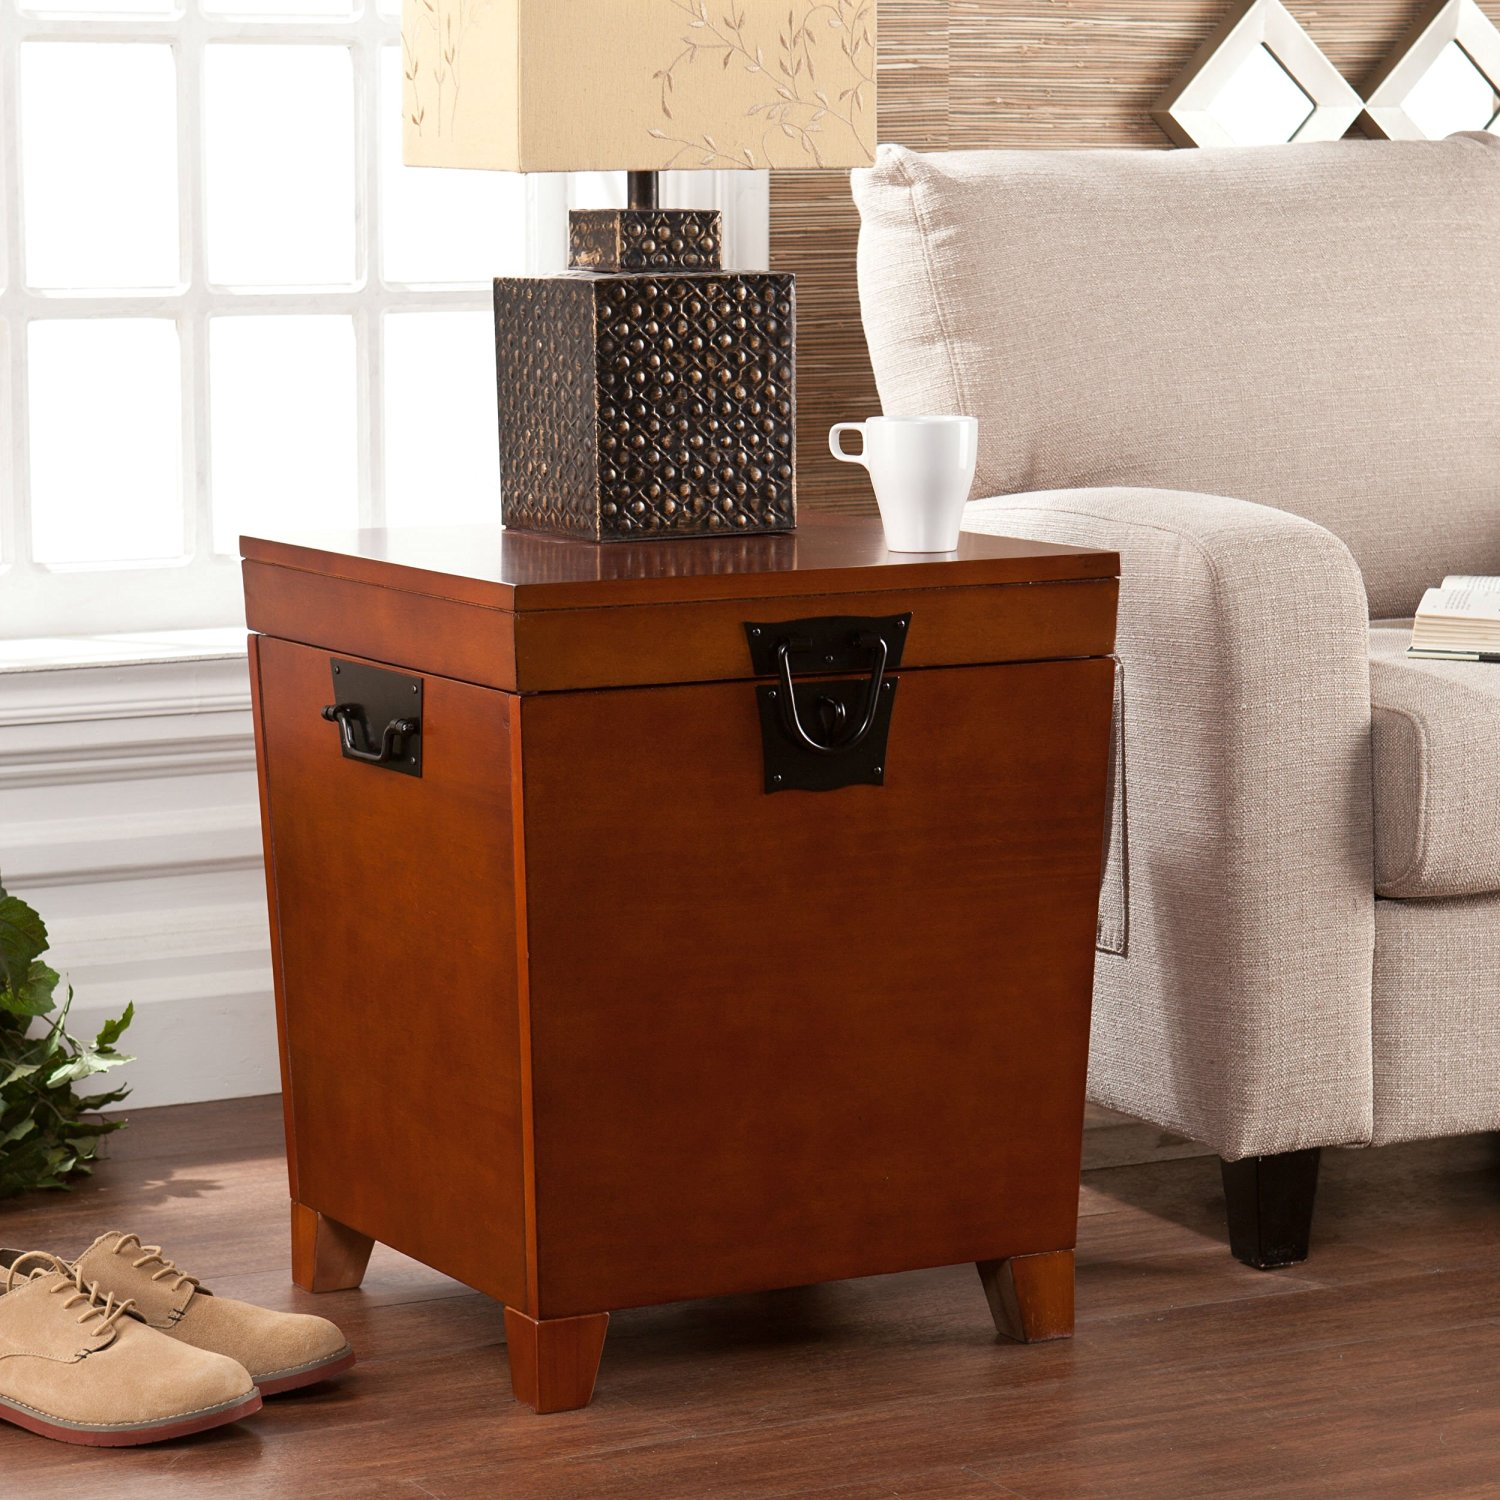 This Living Room End Table is made from Natural Brown Oak Wood. Perfect Trunk Accent Furniture Piece for bedroom or Living room Area next to sofa as Ottoman, Coffee Table, Chest or Storage Bench Box